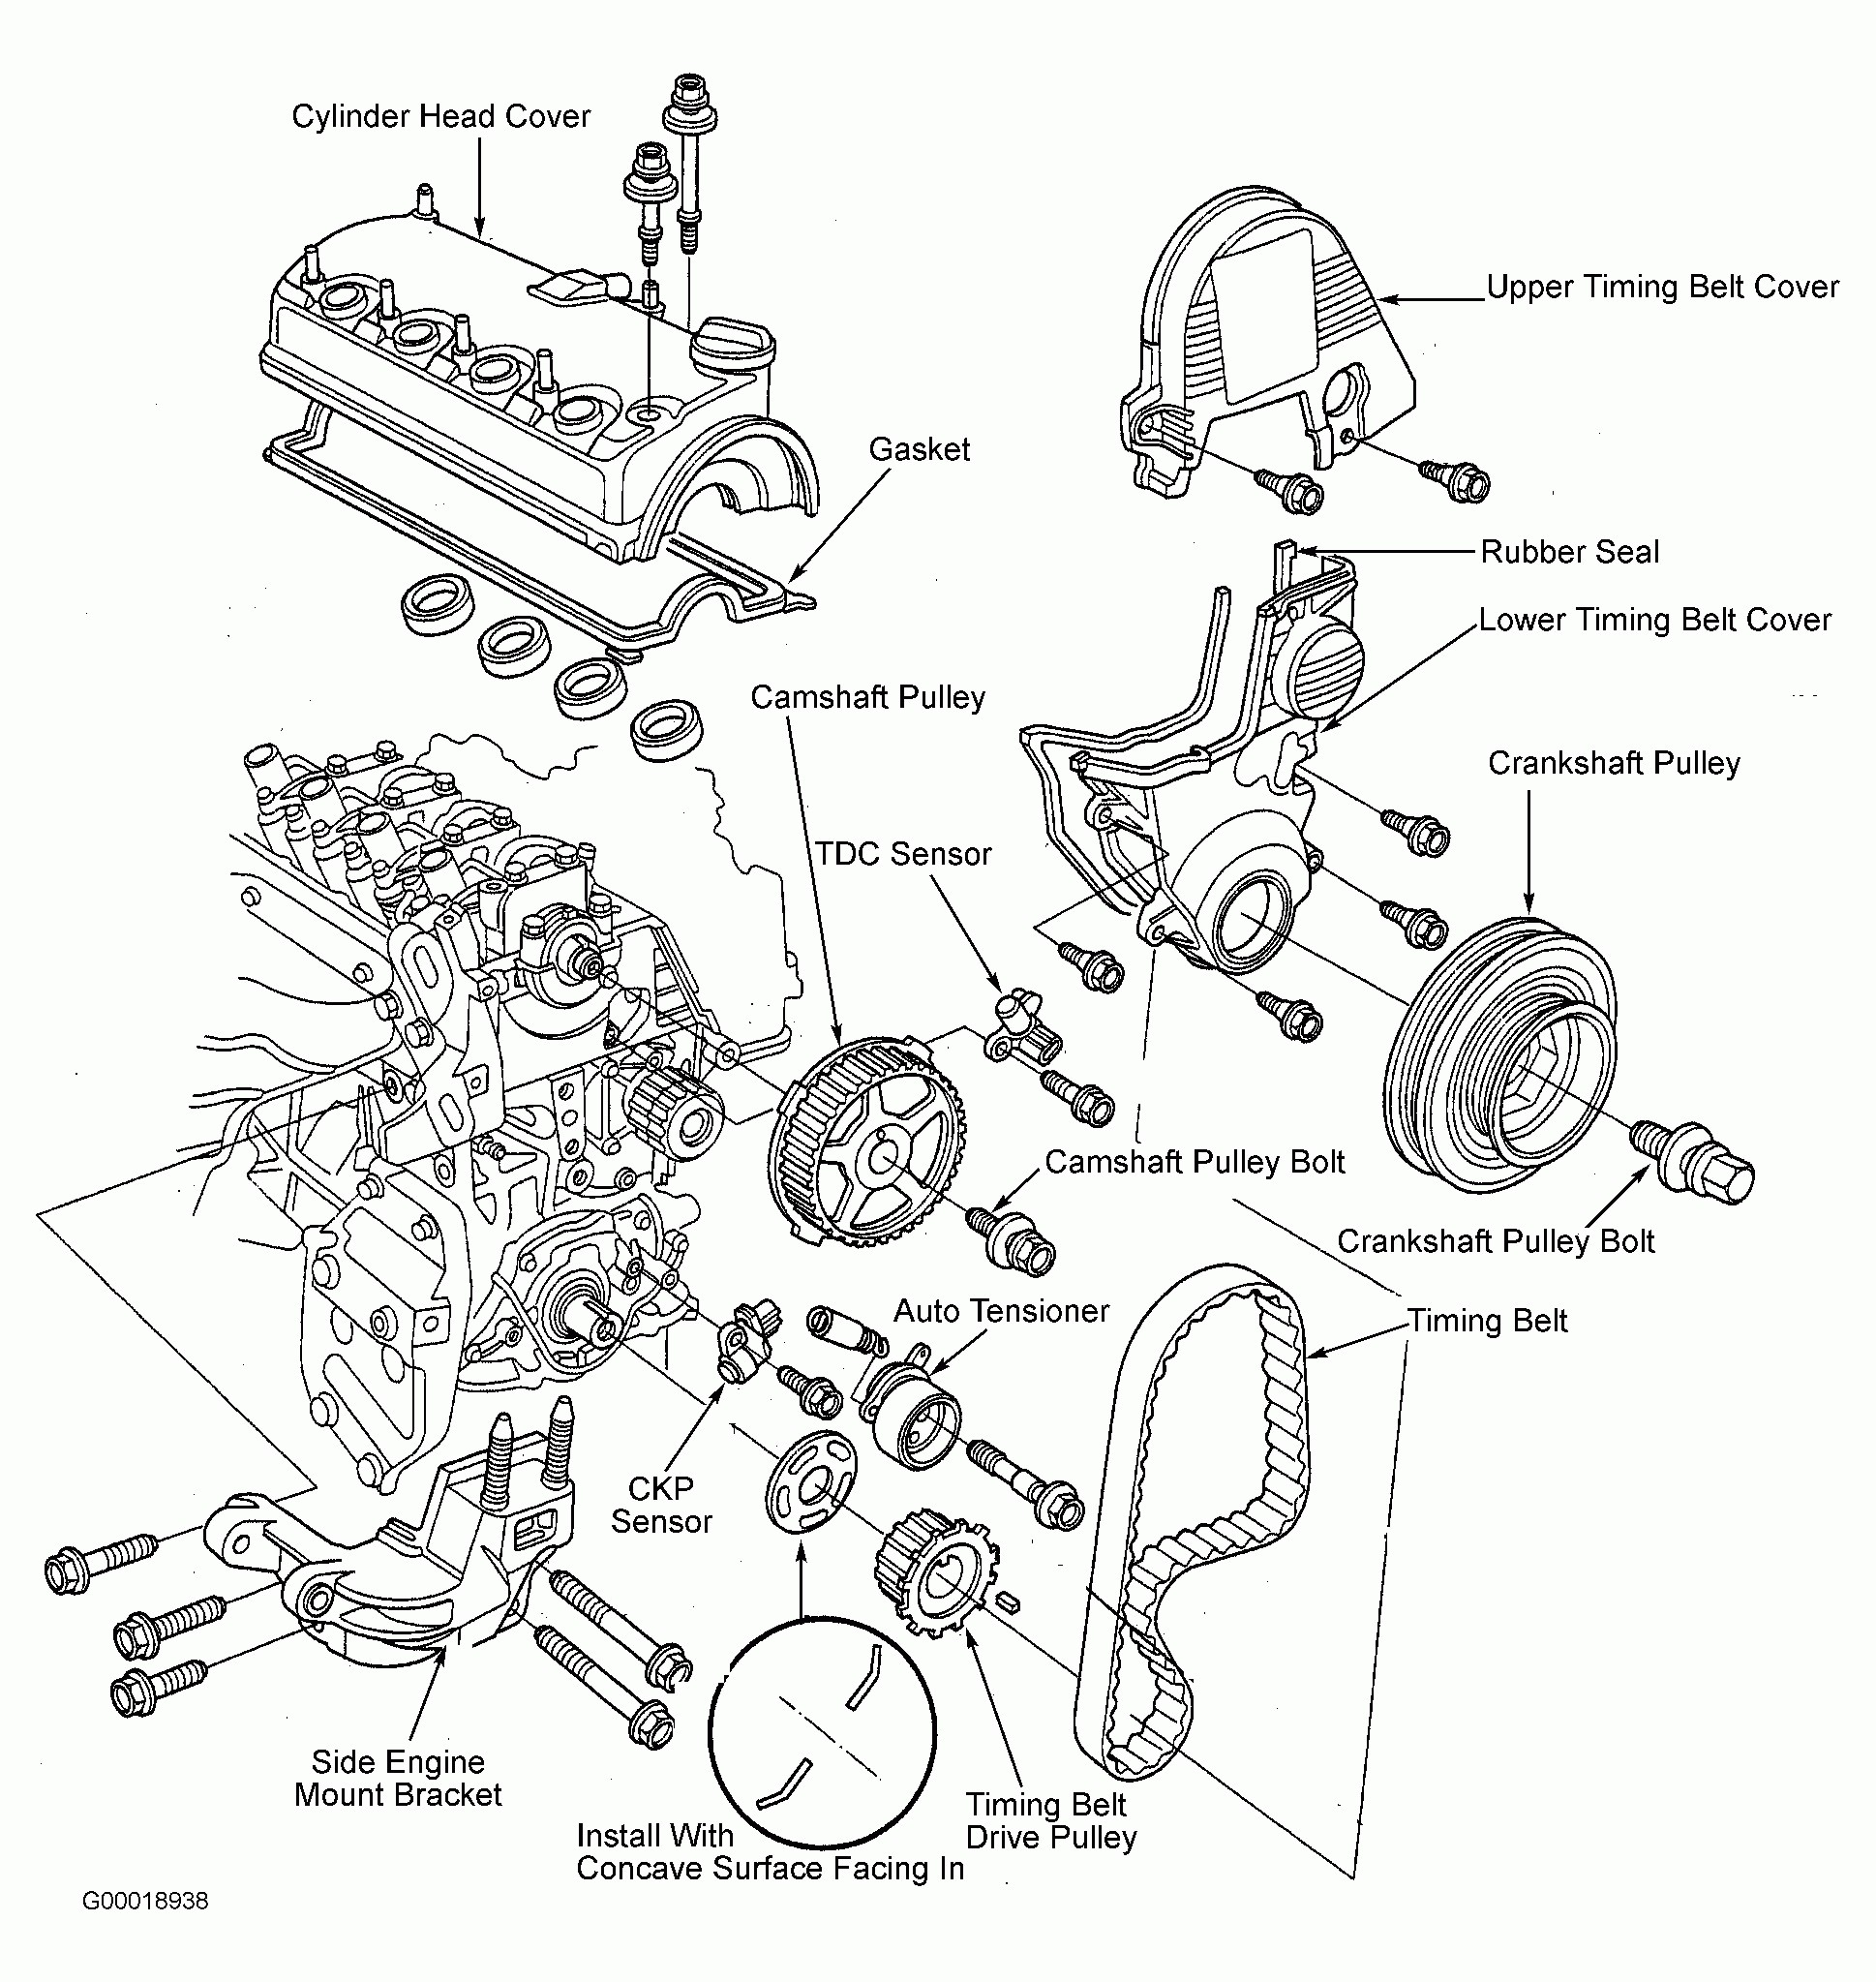 2001 Honda Civic Lx Engine Diagram Cool Review About 2003 Honda Civic Dx with Extraordinary Gallery Of 2001 Honda Civic Lx Engine Diagram